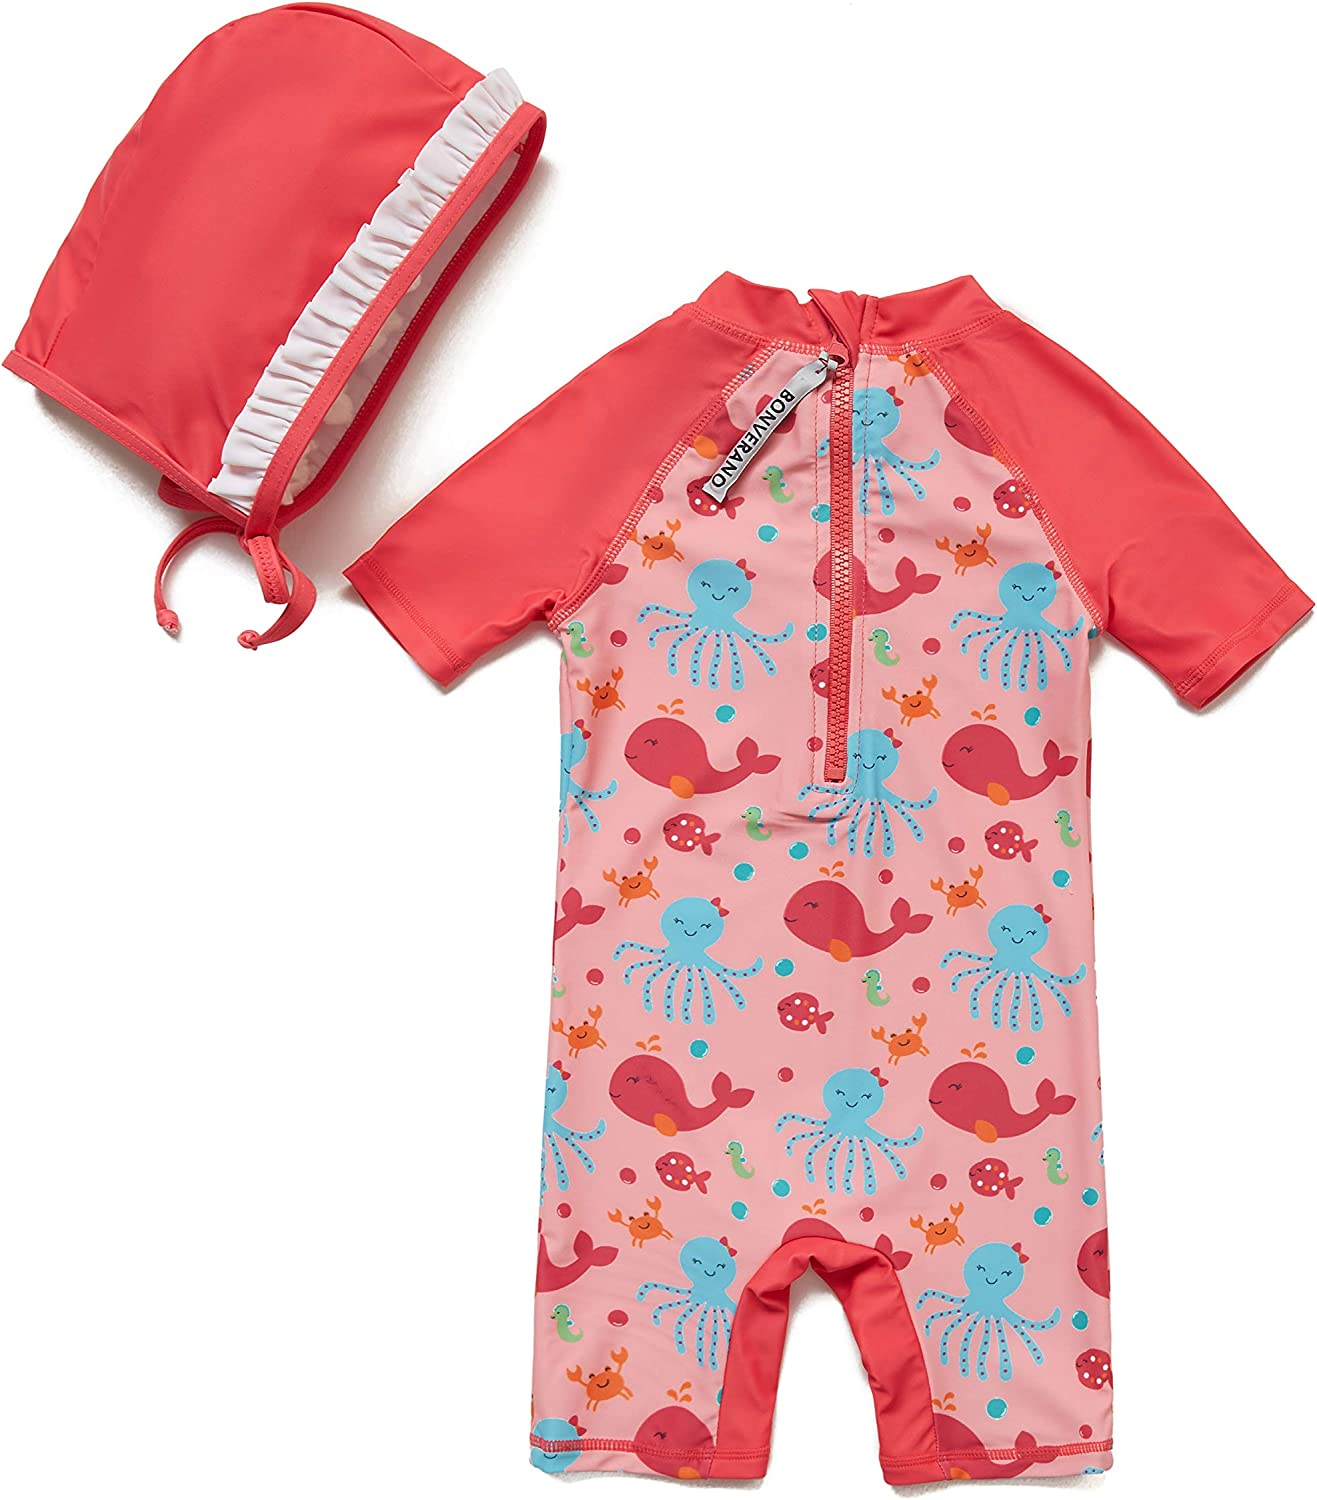 Bonverano Baby Girls Sunsuit UPF 50 Watermelon Red, 24-36Months Sun Protection One Pieces Short Sleeves Swimsuit with Sun Hat